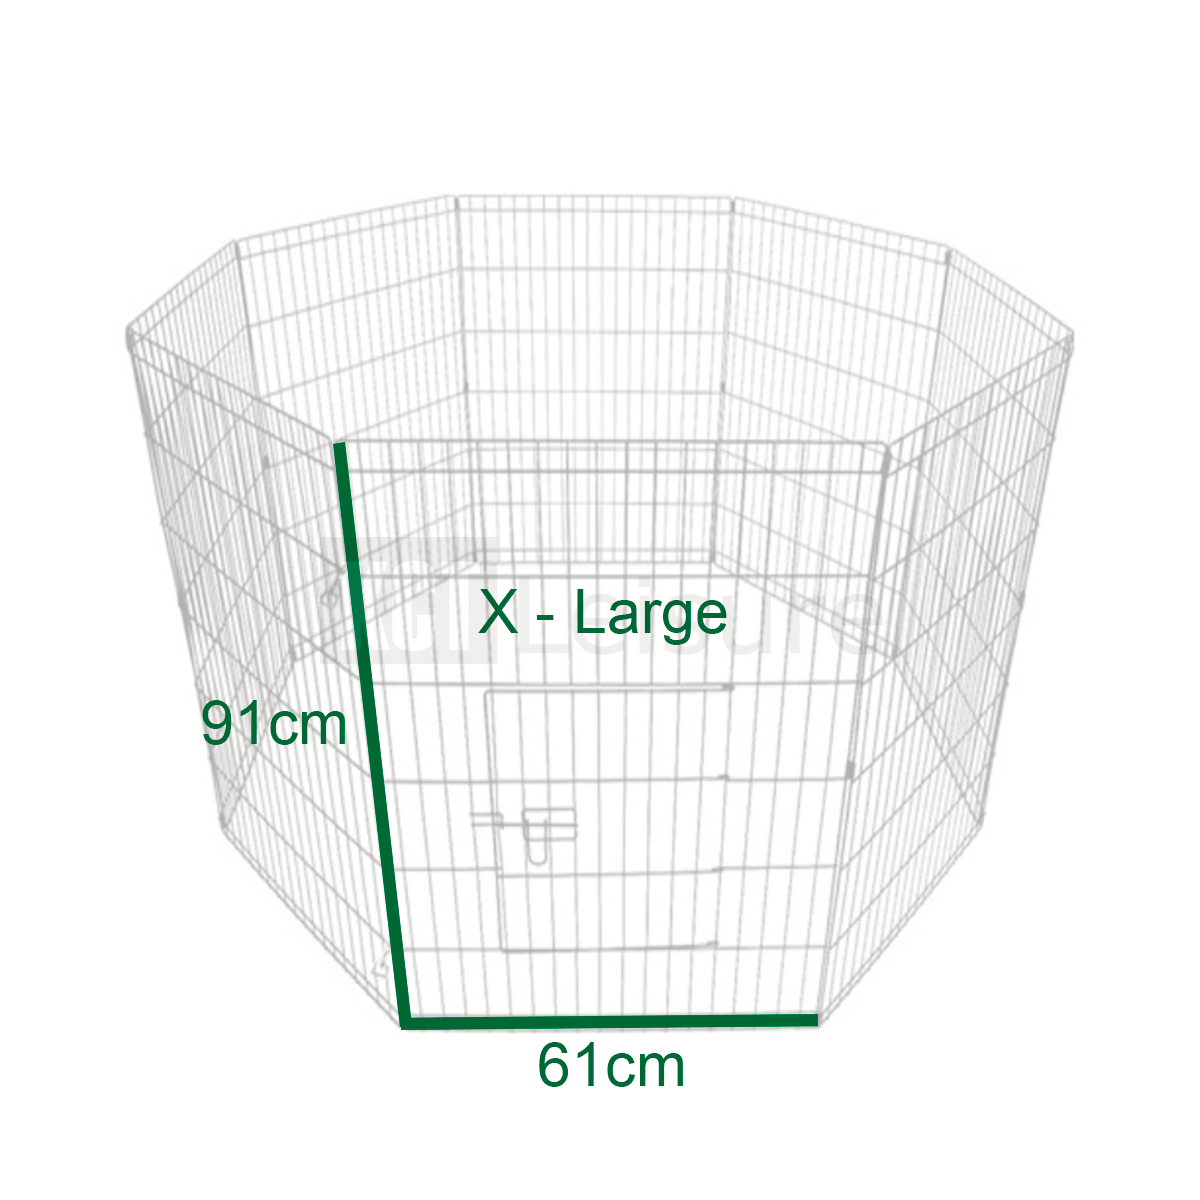 Puppy Play Pen Extra Large 91cm Animal Cage 8 Panel Pet